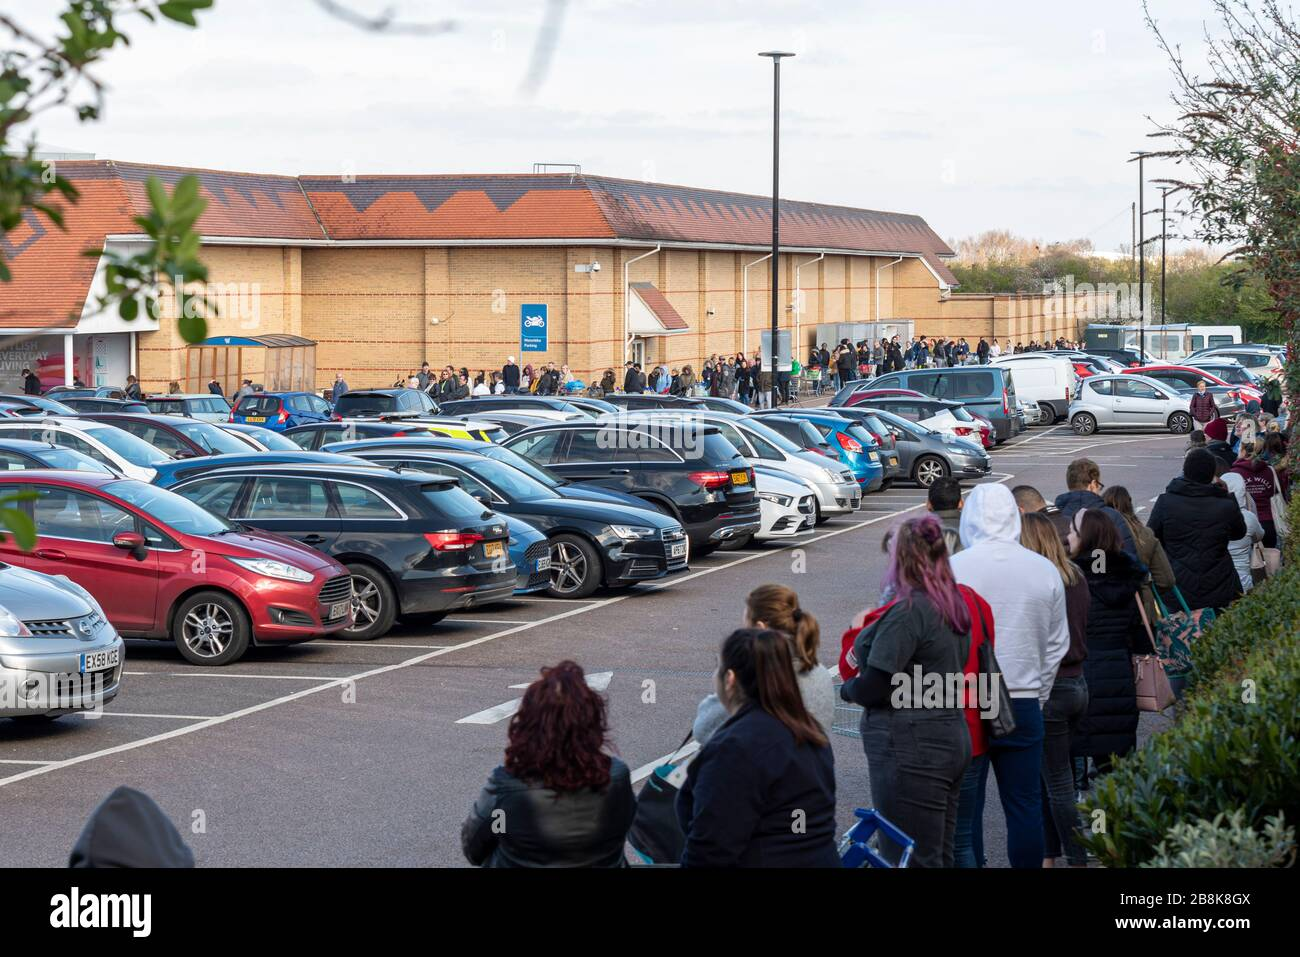 tesco-supermarket-in-southend-on-sea-with-huge-numbers-of-shoppers-queuing-in-morning-panic-buying-shopping-standing-close-together-during-covid-19-2B8K8GX.jpg